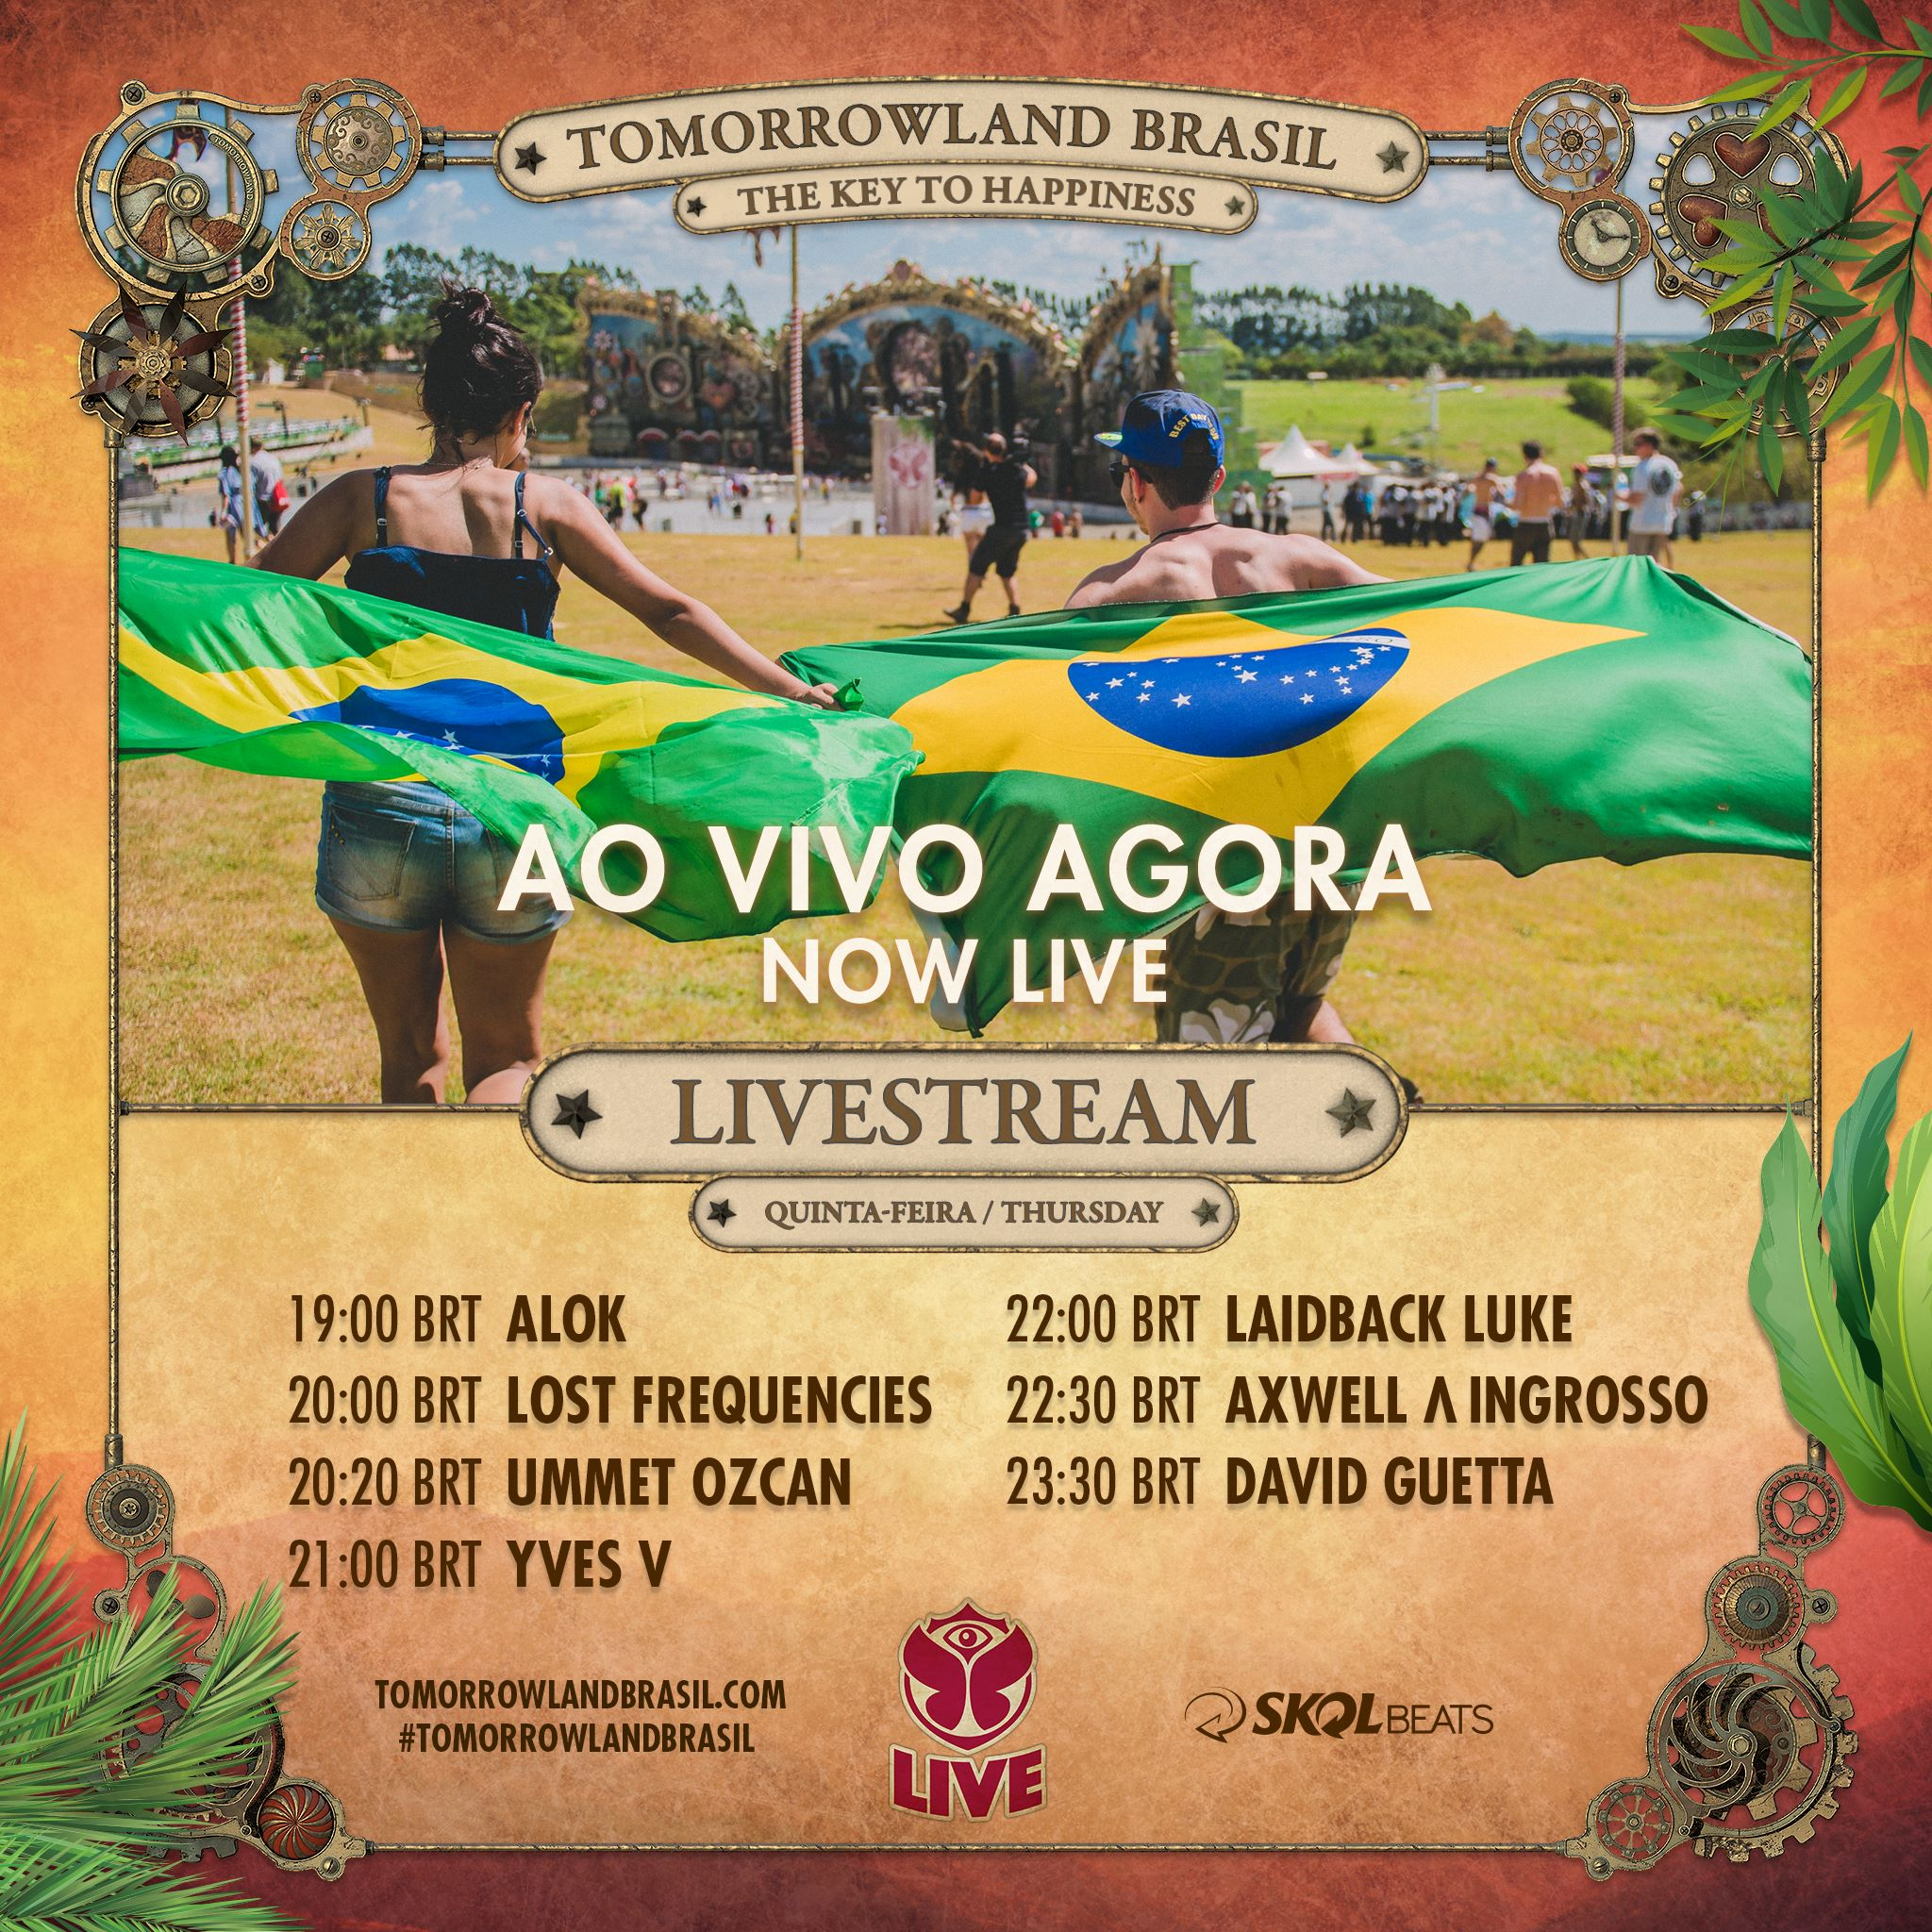 Tomorrowland Brasil LIVE FRI